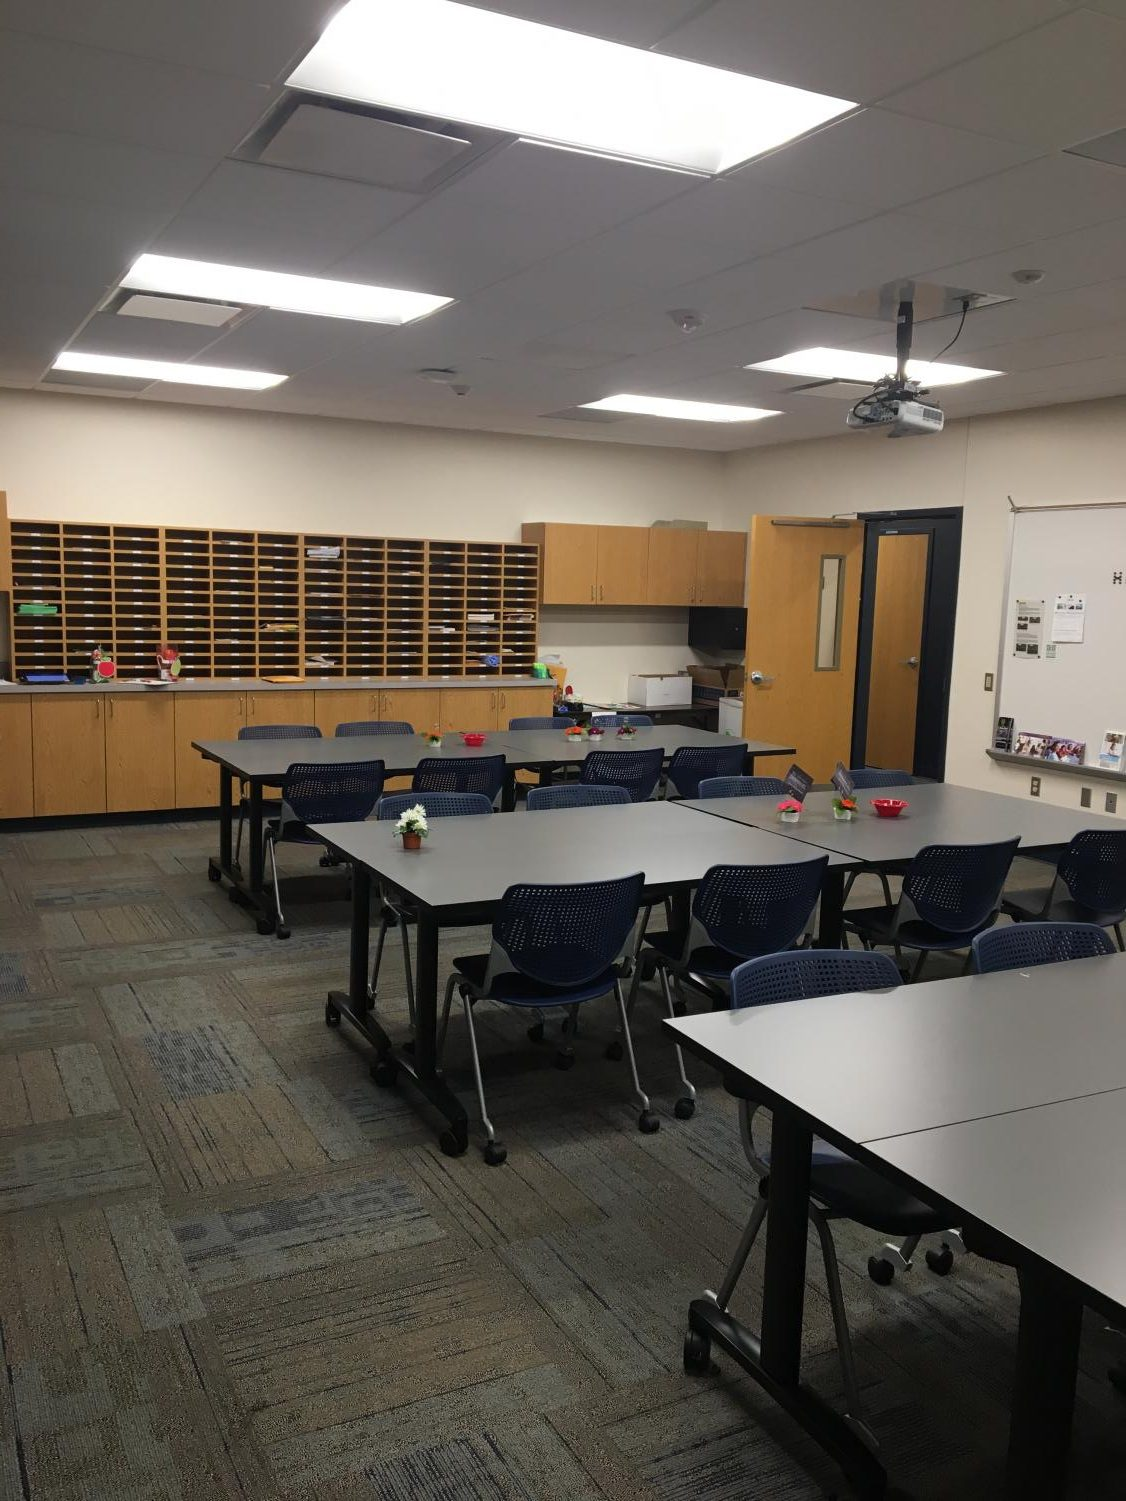 The teachers lounge is filled with movable tables and chairs so the room can be rearranged easily.